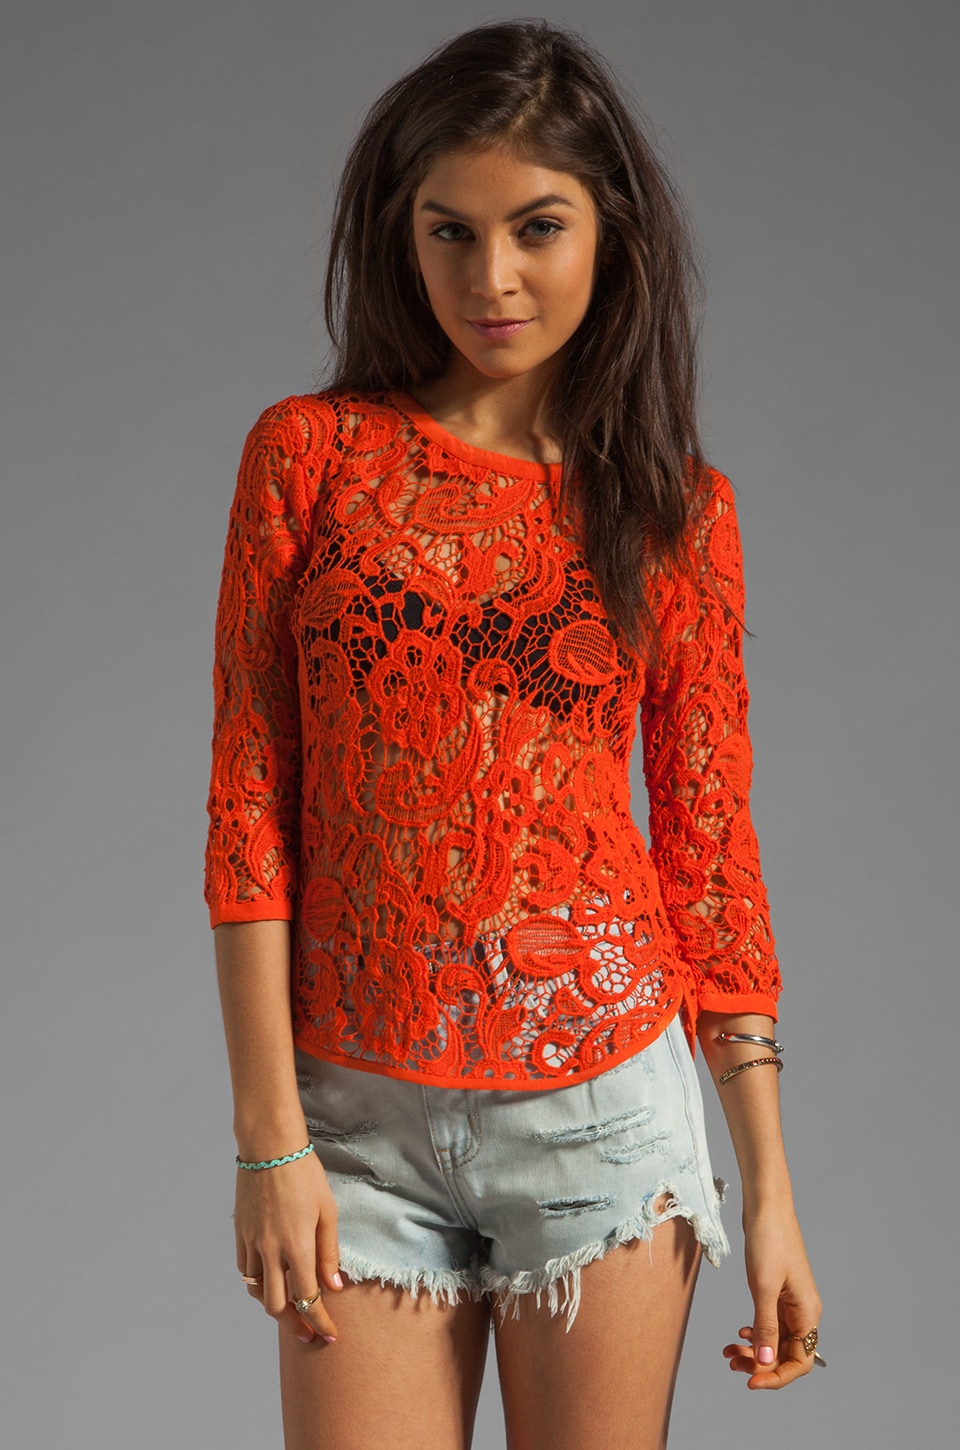 Dolce Vita Abelle Scroll Lace Blouse in Bright Orange